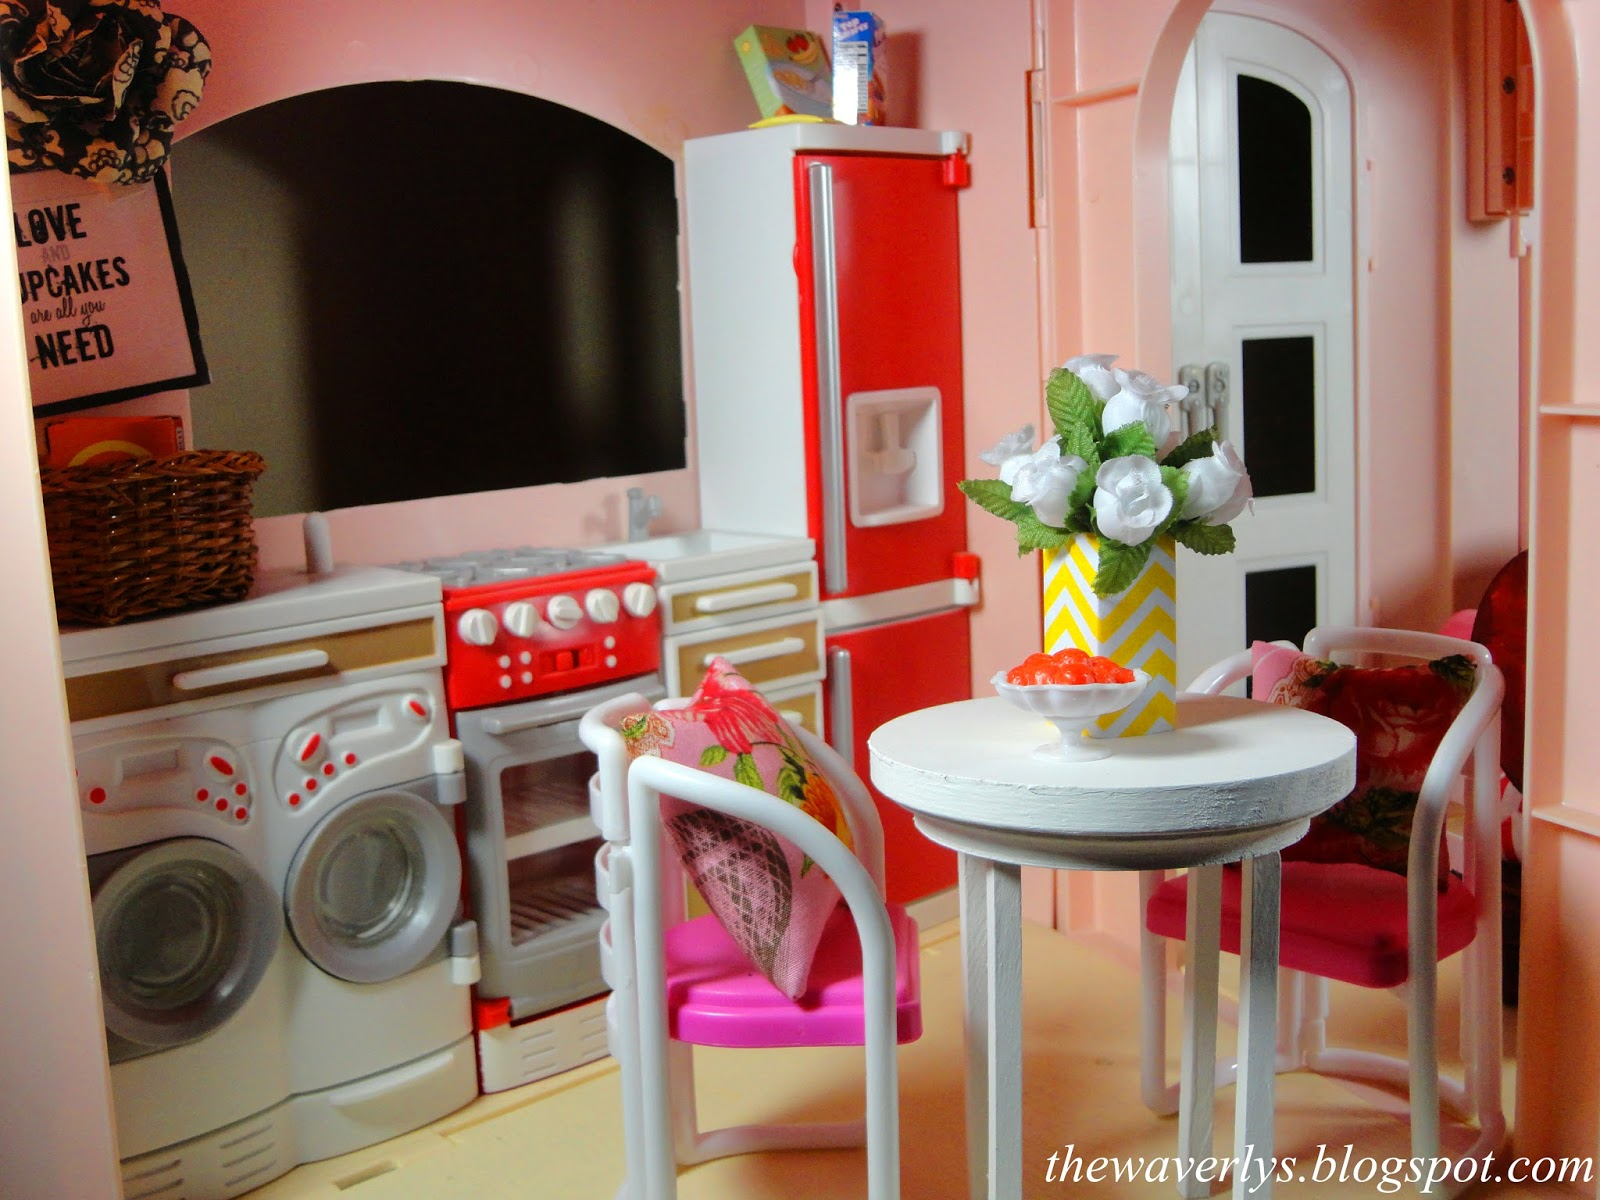 Barbie Bedroom Decor   PierPointSprings com barbie bedroom decor The Waverlys A Barbie Doll Story  Barbie Bedroom Decor  Wallpress 1080p HD. Barbie Bedroom Decor. Home Design Ideas